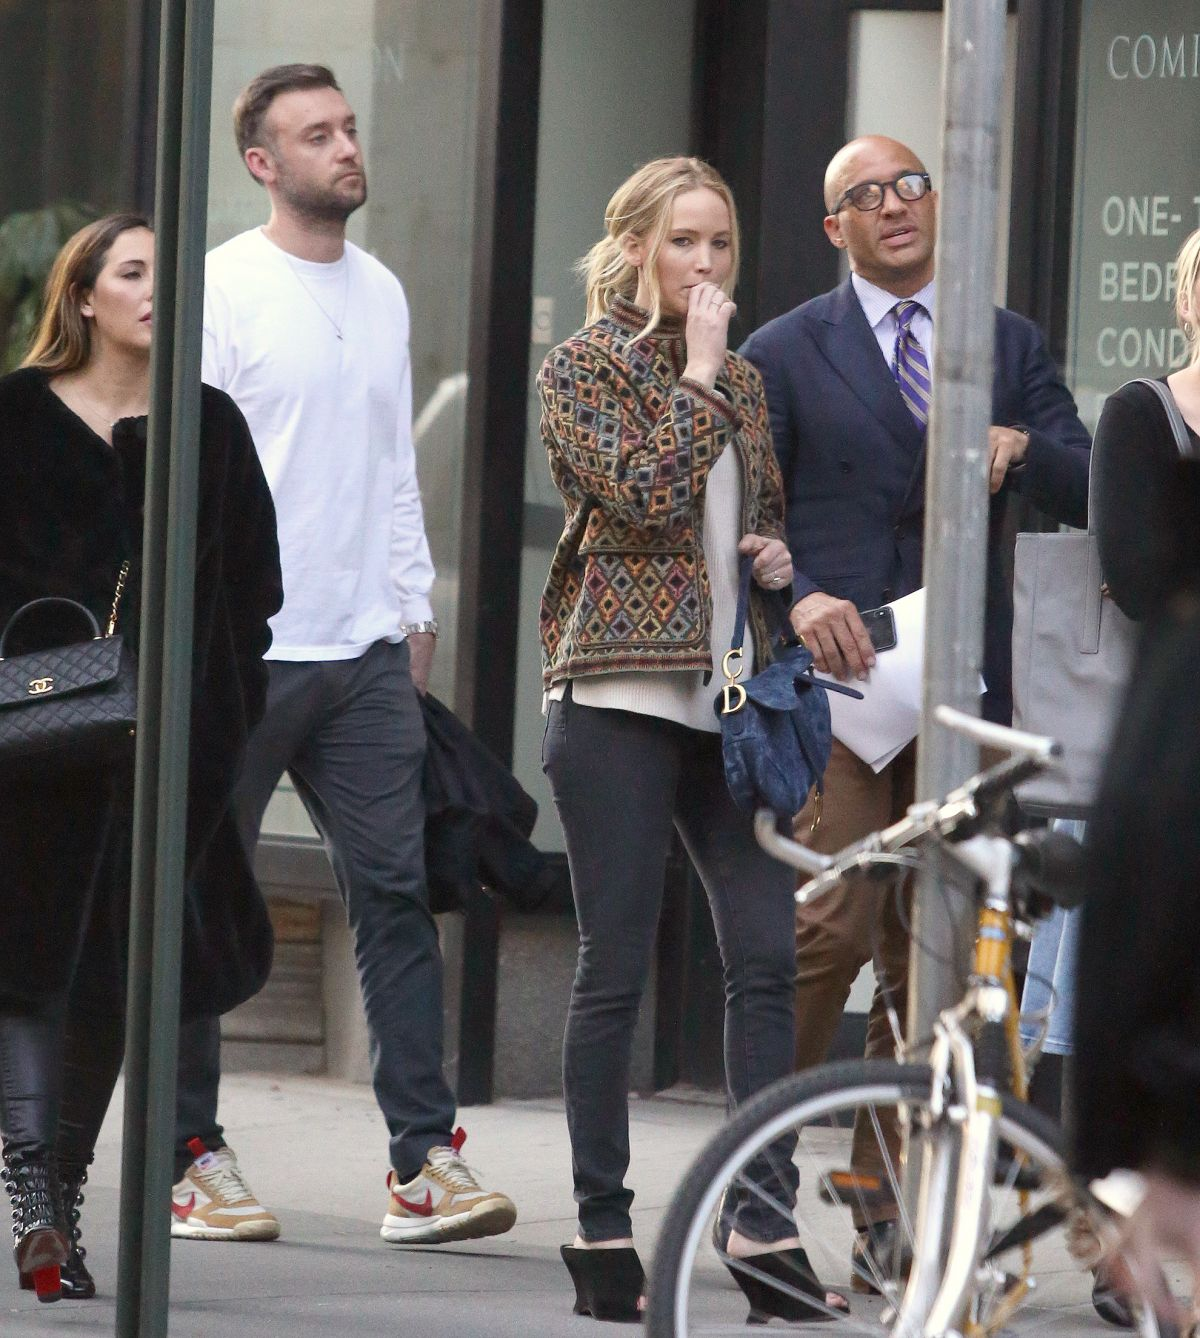 Apartment Shopper: Jennifer Lawrence And Cooke Maroney Are Apartment Shopping